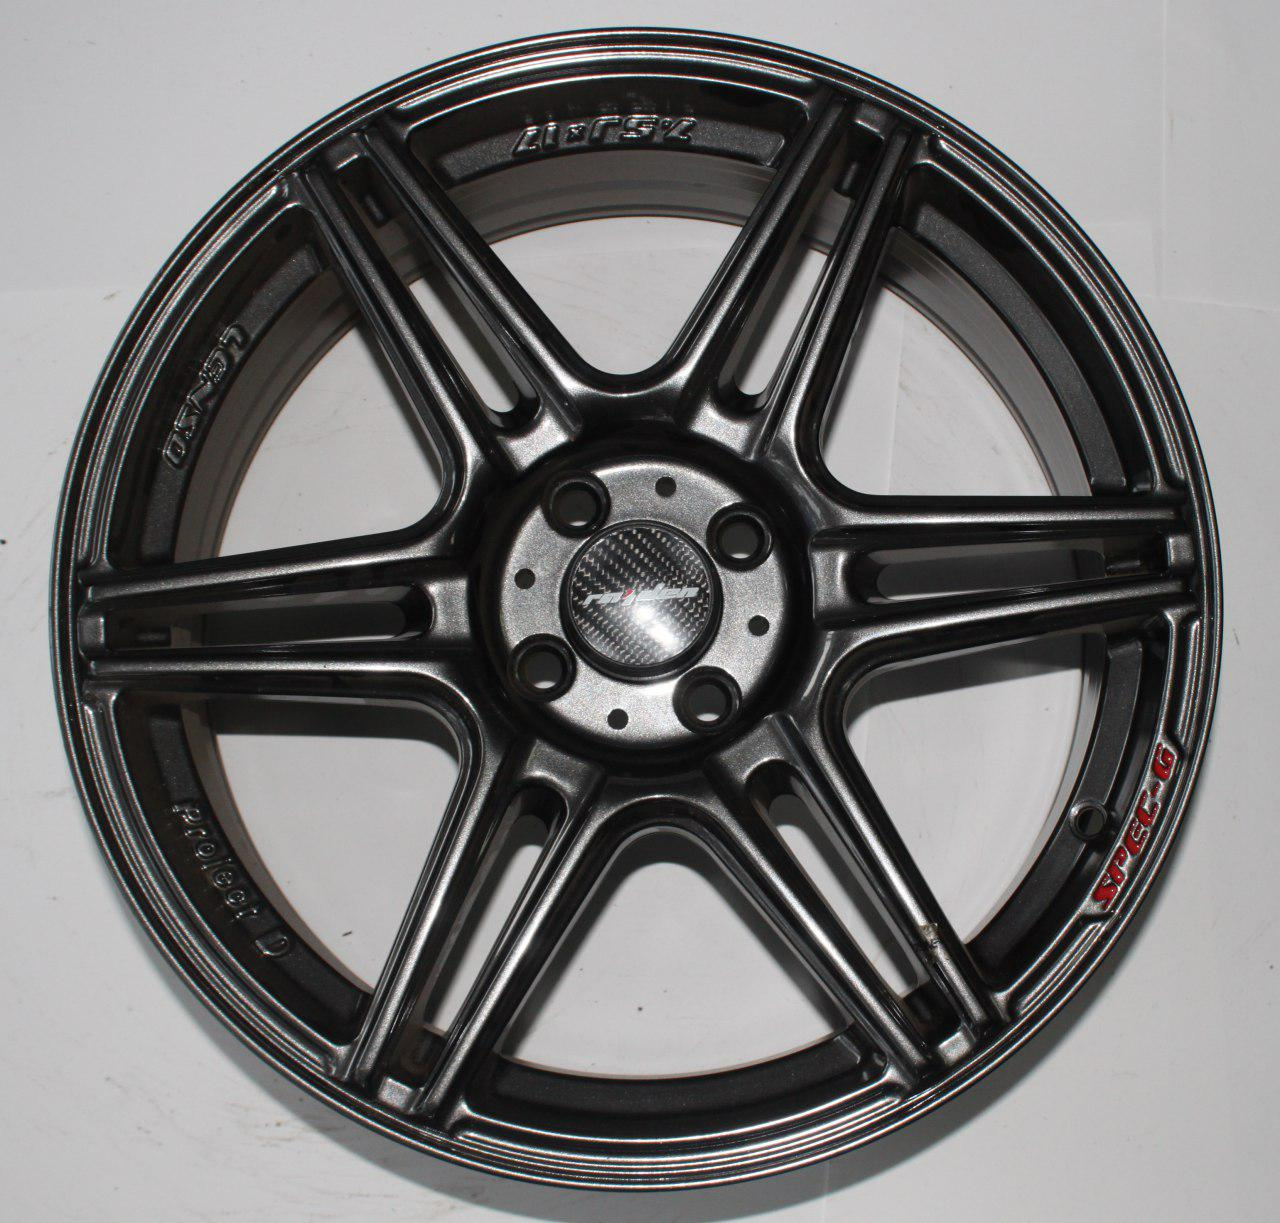 17 4/100 LENSO 7.5 42/73.1 HD PROJECT-D-SPEC-G